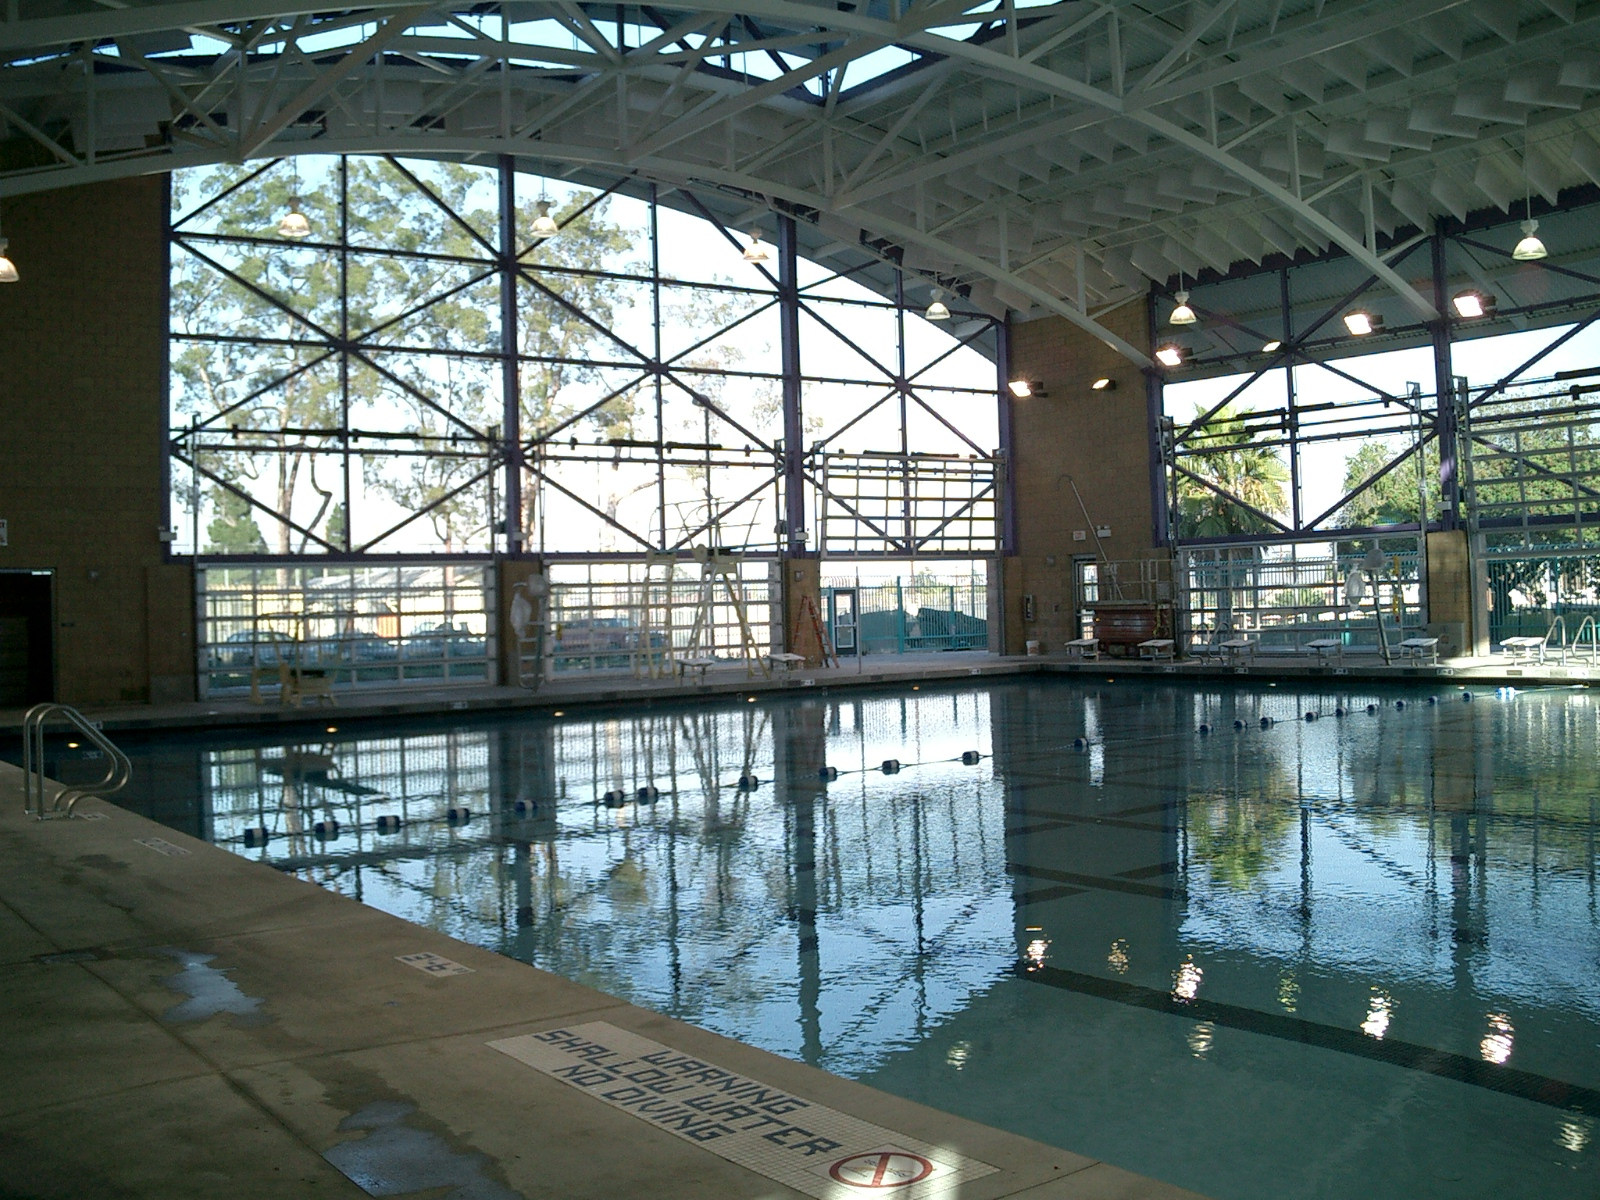 Summer 2011 Pool Openings And Swim Lessons For Parks In